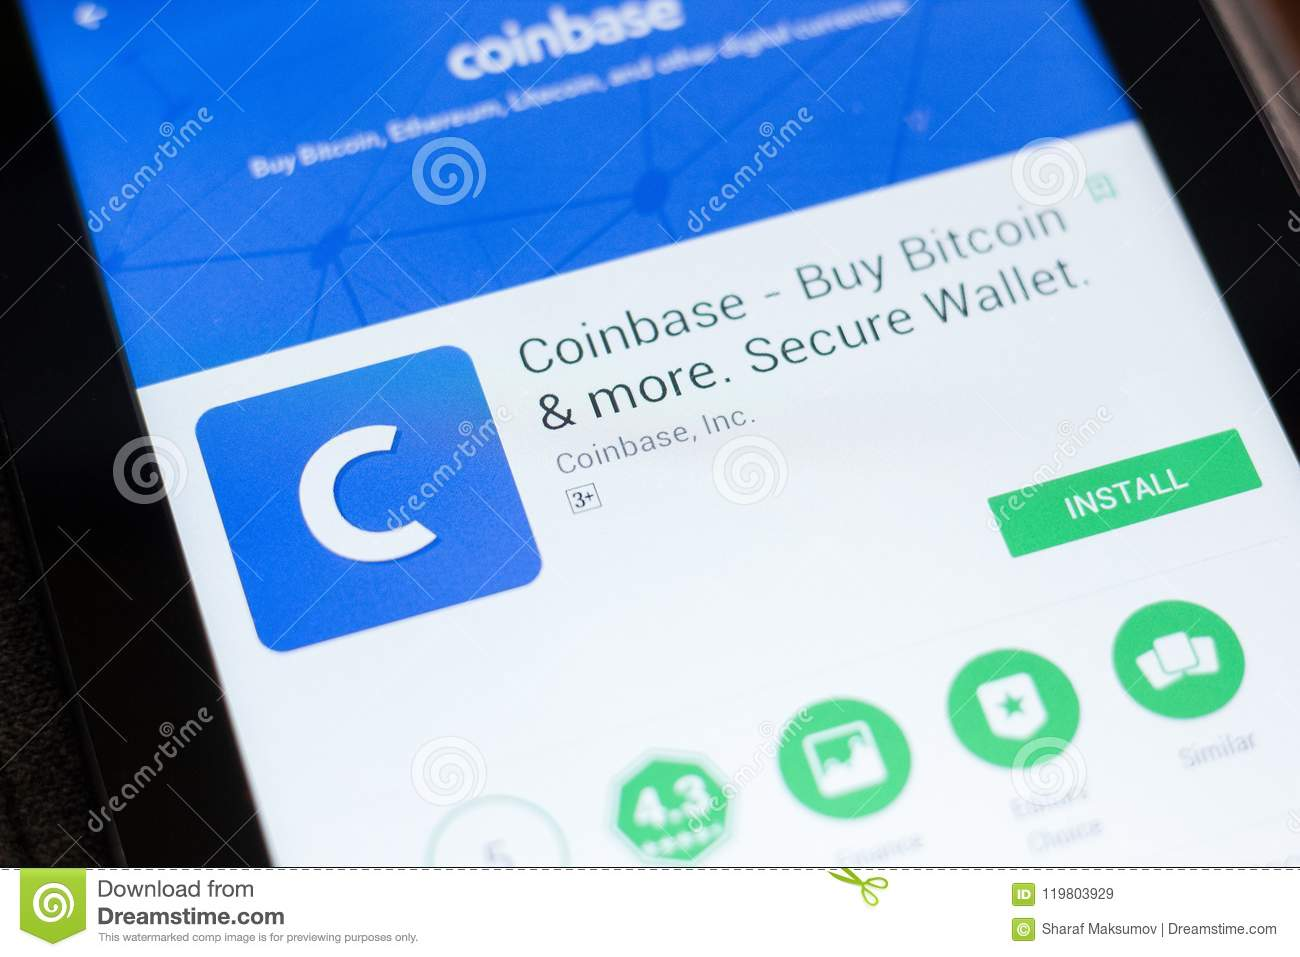 Ryazan russia june 24 2018 coinbase buy bitcoin and more download ryazan russia june 24 2018 coinbase buy bitcoin and more ccuart Choice Image